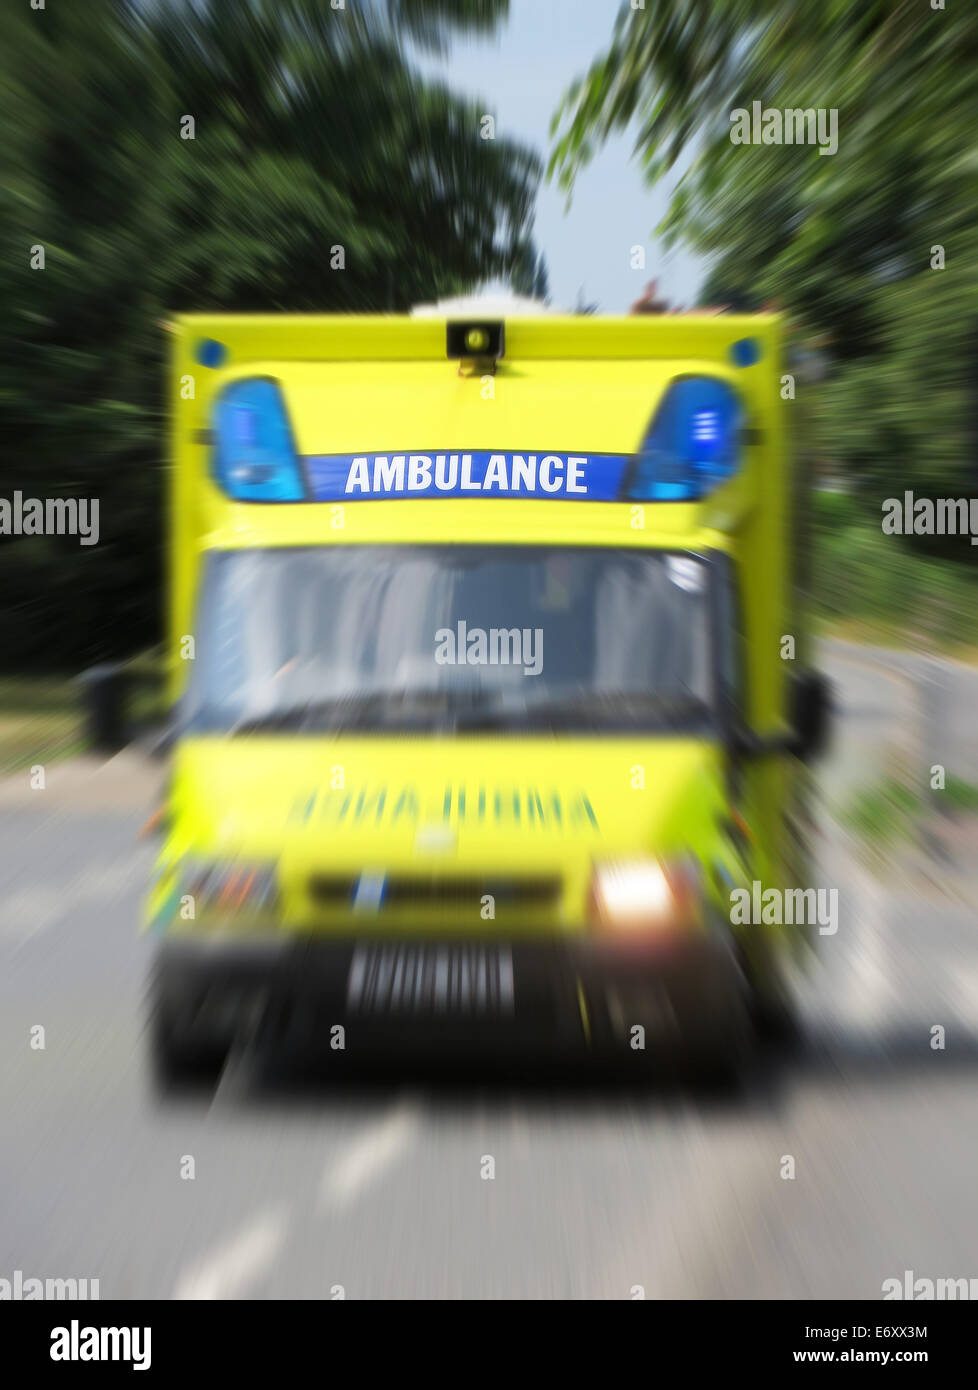 Ambulance in road with zoom effect focusing on sign. - Stock Image